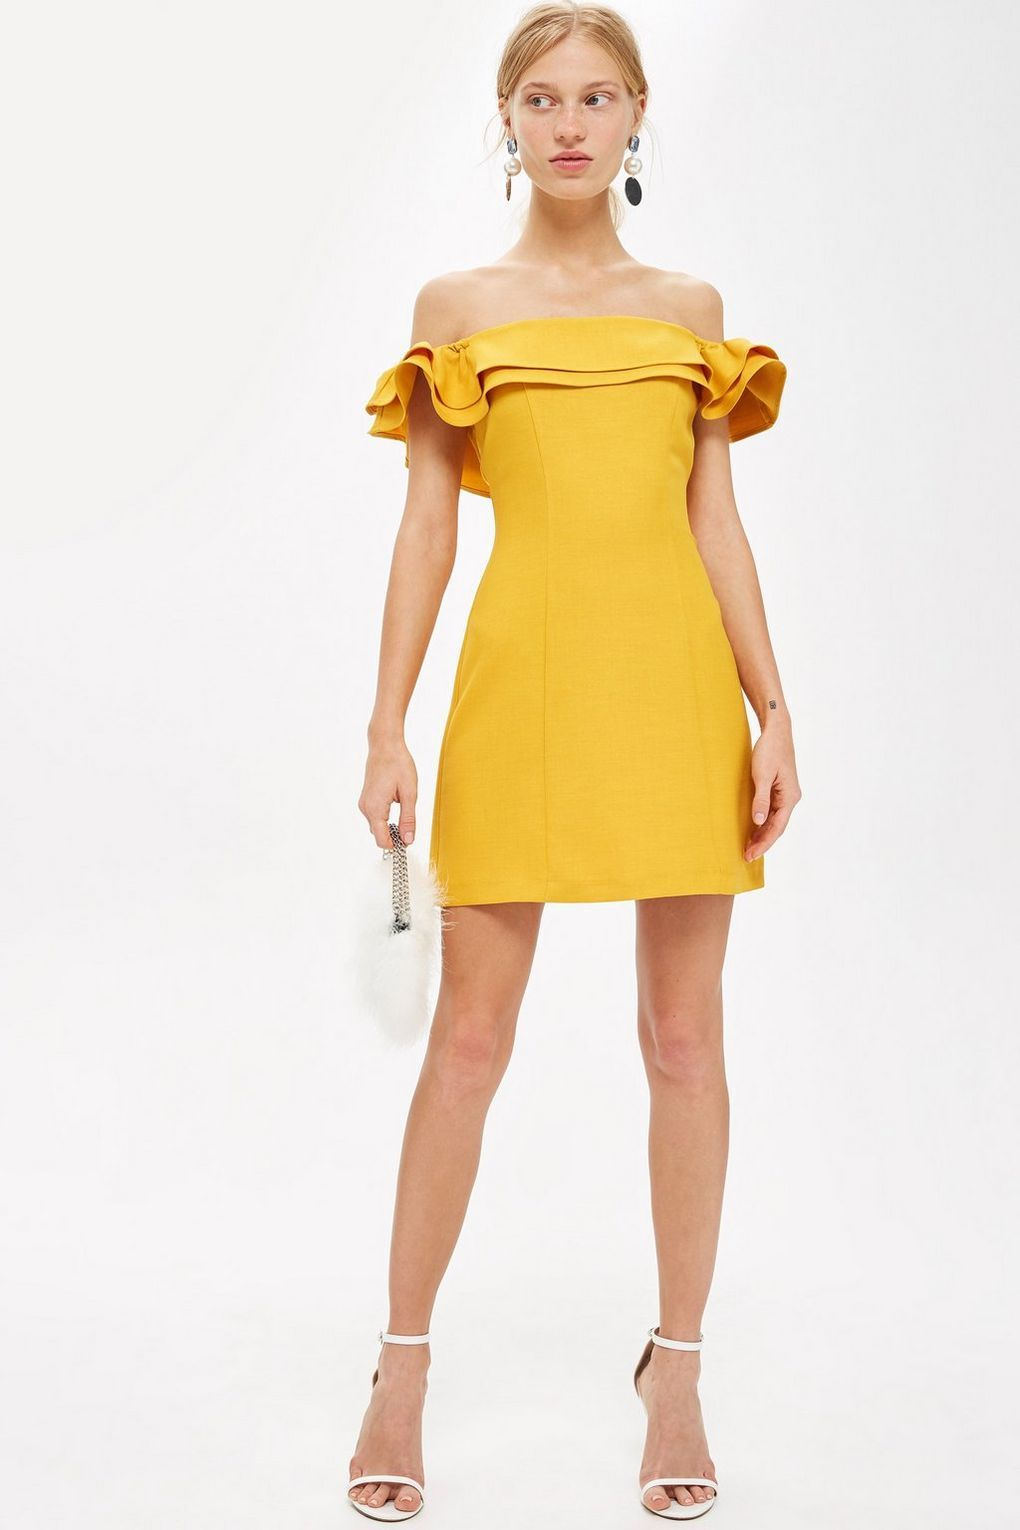 17 Fall Wedding Guest Dresses What To Wear A